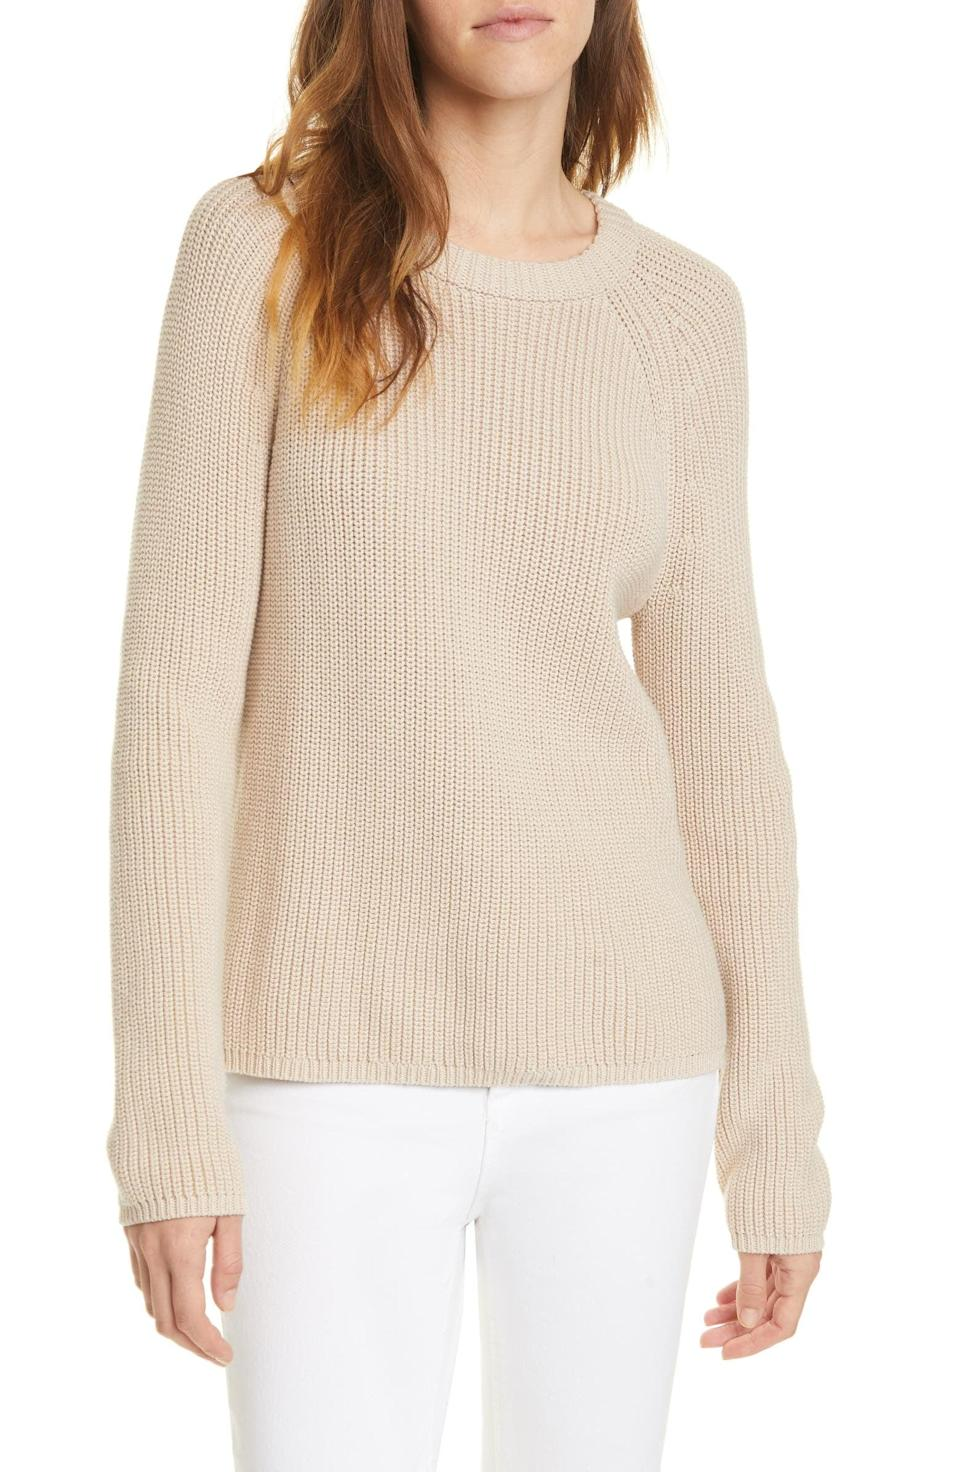 """<p>You need this classic <a href=""""https://www.popsugar.com/fashion/top-rated-sweaters-from-nordstrom-48516965?stream_view=1&amp;bonsai=product_ckkp6tujx009h12y29rsdd90i&amp;bonsaiRedirect=https%253A%252F%252Fwww.popsugar.com%252Ffashion%252Ftop-rated-sweaters-from-nordstrom-48516965%253Fstream_view%253D1&amp;bonsaiSource=link&amp;bonsaiType=links&amp;isExternal=true"""" class=""""link rapid-noclick-resp"""" rel=""""nofollow noopener"""" target=""""_blank"""" data-ylk=""""slk:Jenni Kayne Fisherman Sweater"""">Jenni Kayne Fisherman Sweater</a> ($295) in your life. It goes with everything, and it's easy to throw on and head out the door.</p>"""